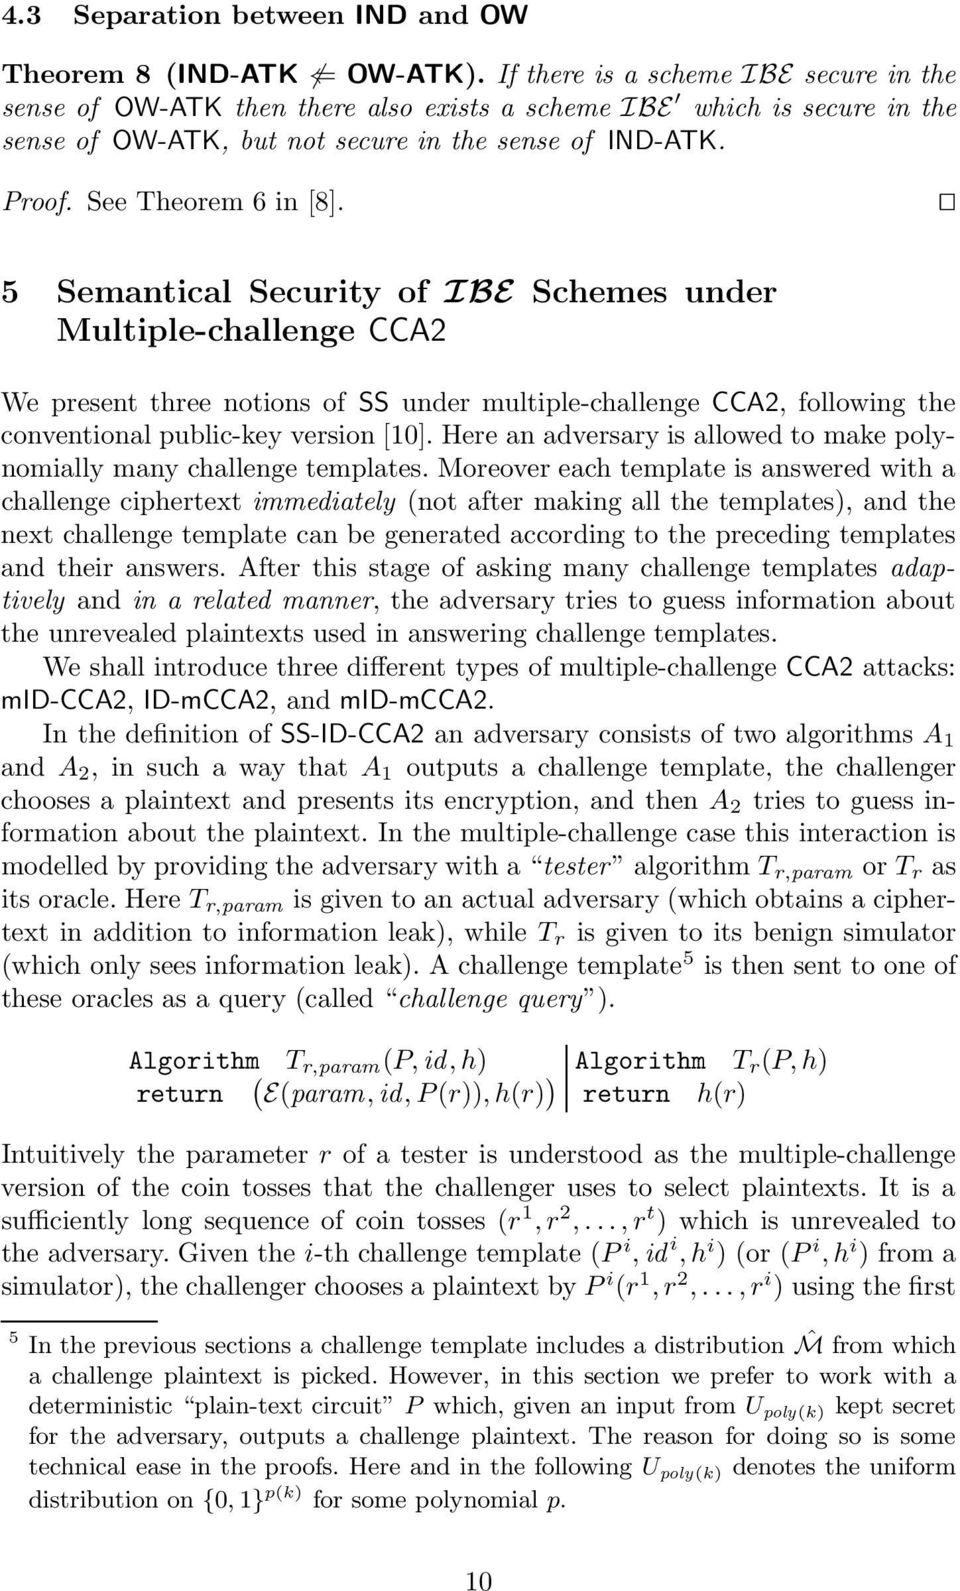 5 Semantical Security of IBE Schemes under Multiple-challenge CCA2 We present three notions of SS under multiple-challenge CCA2, following the conventional public-key version [10].